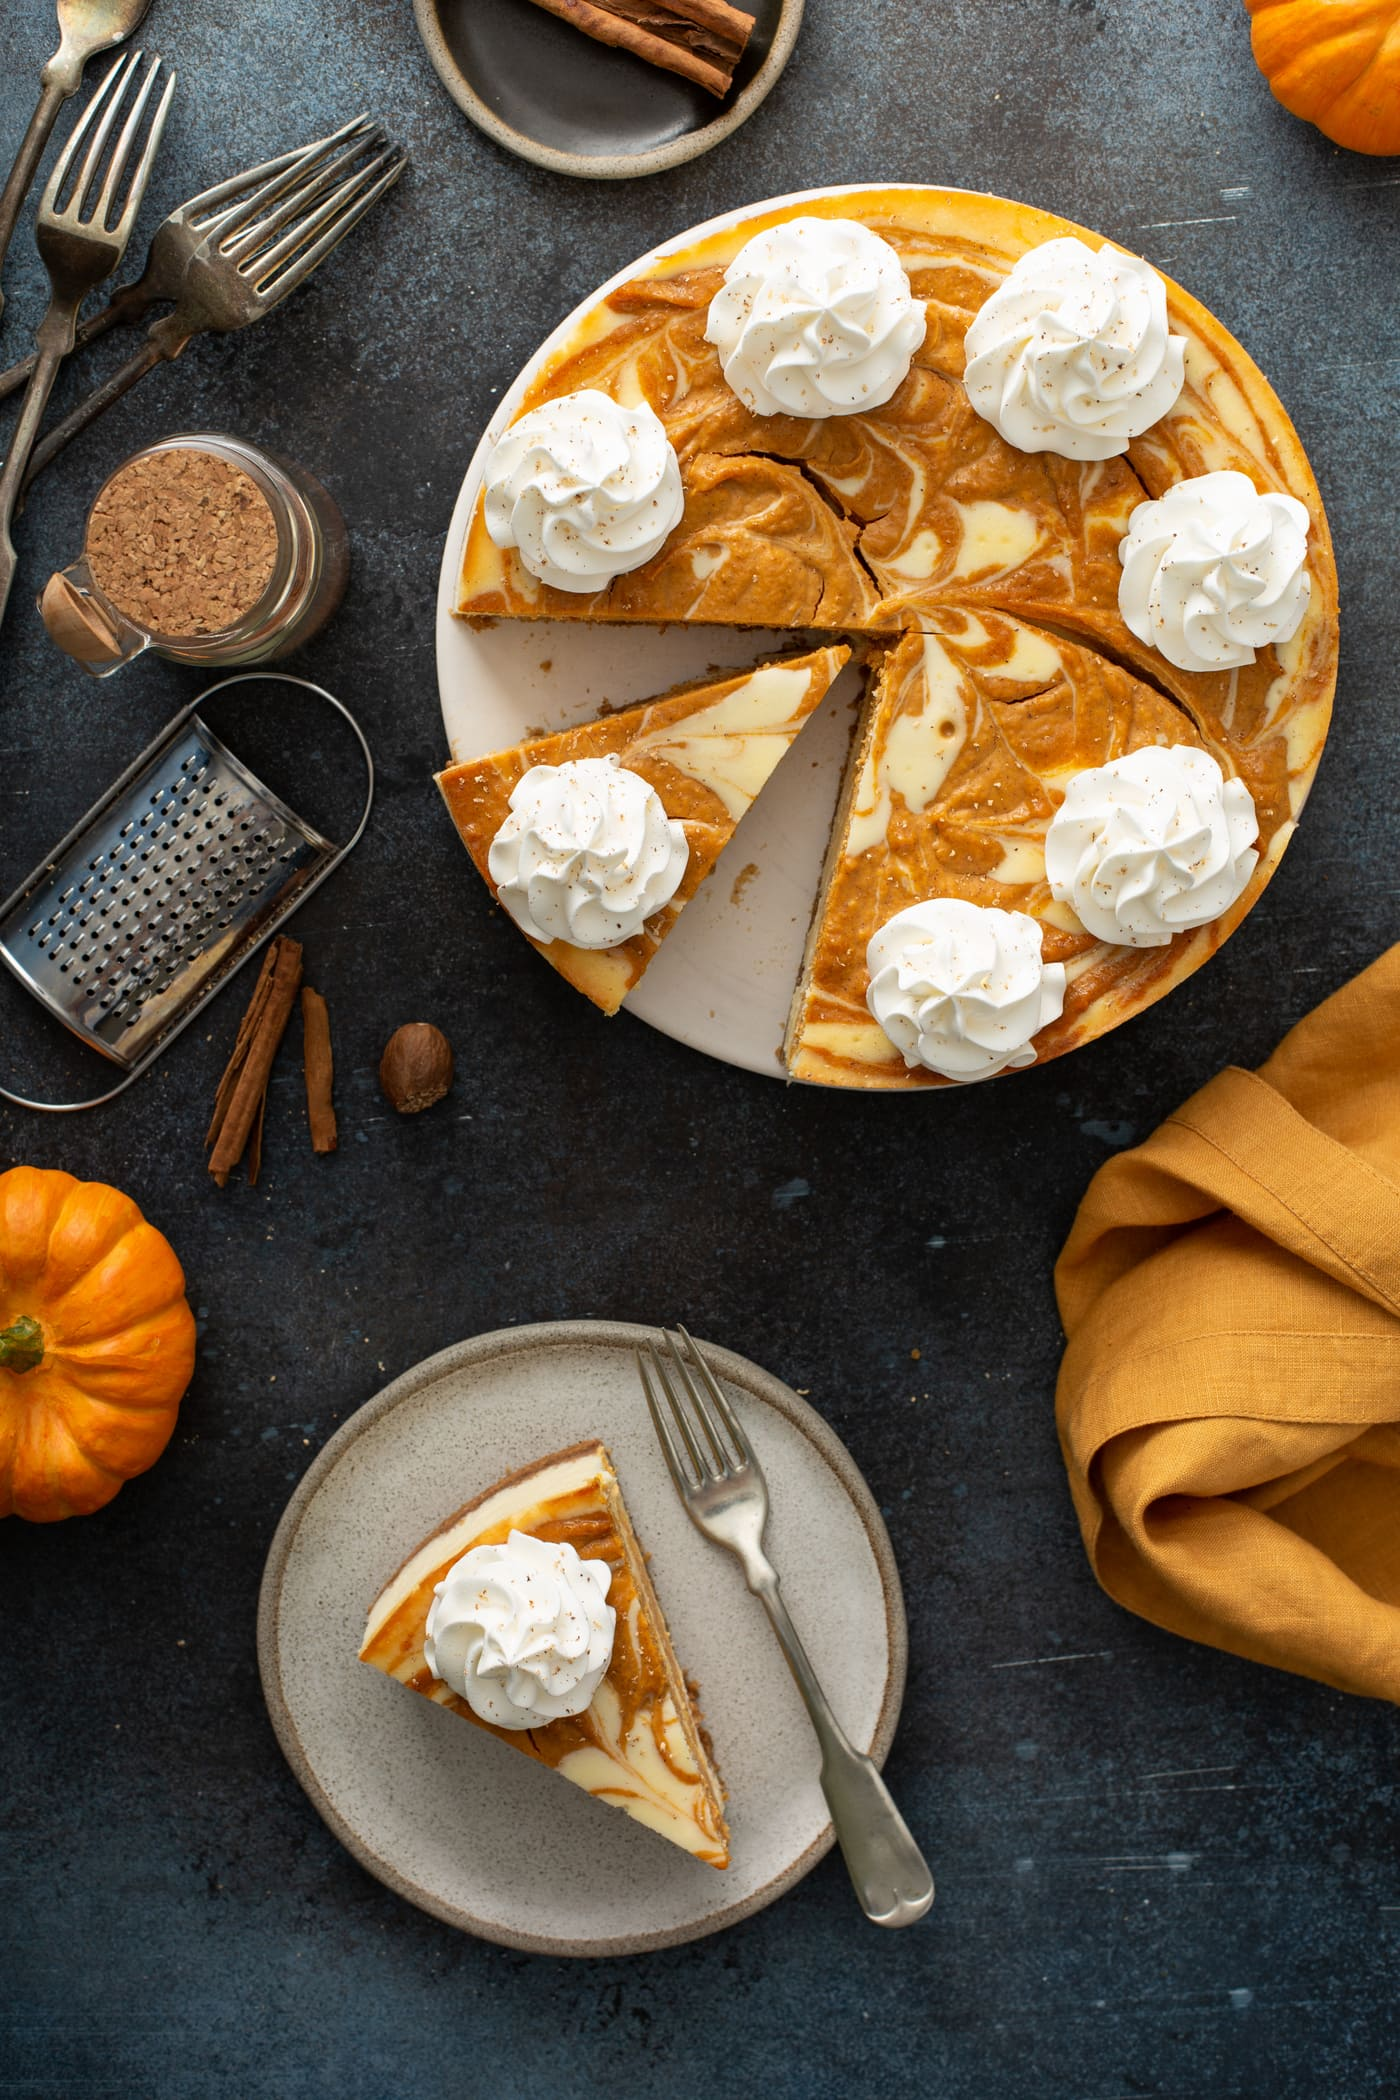 A plate with a slice of swirled pumpkin cheesecake and a fork. The rest of the cheesecake is in the background with cinnamon sticks, a small pumpkin and an orange napkin.